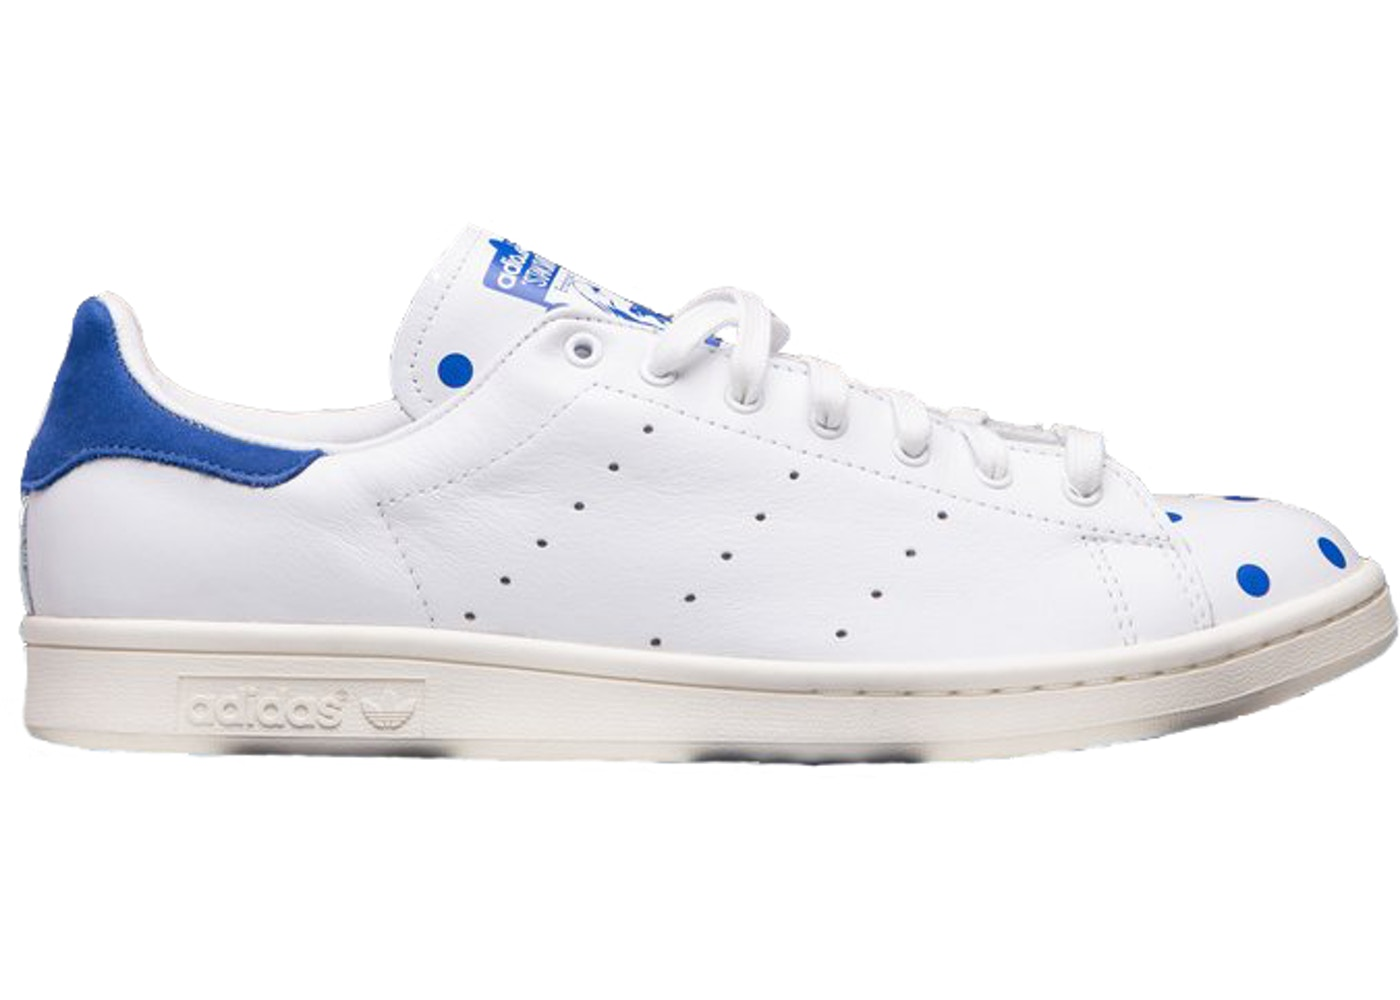 low priced a9ef4 bce44 adidas Stan Smith Colette - M29194